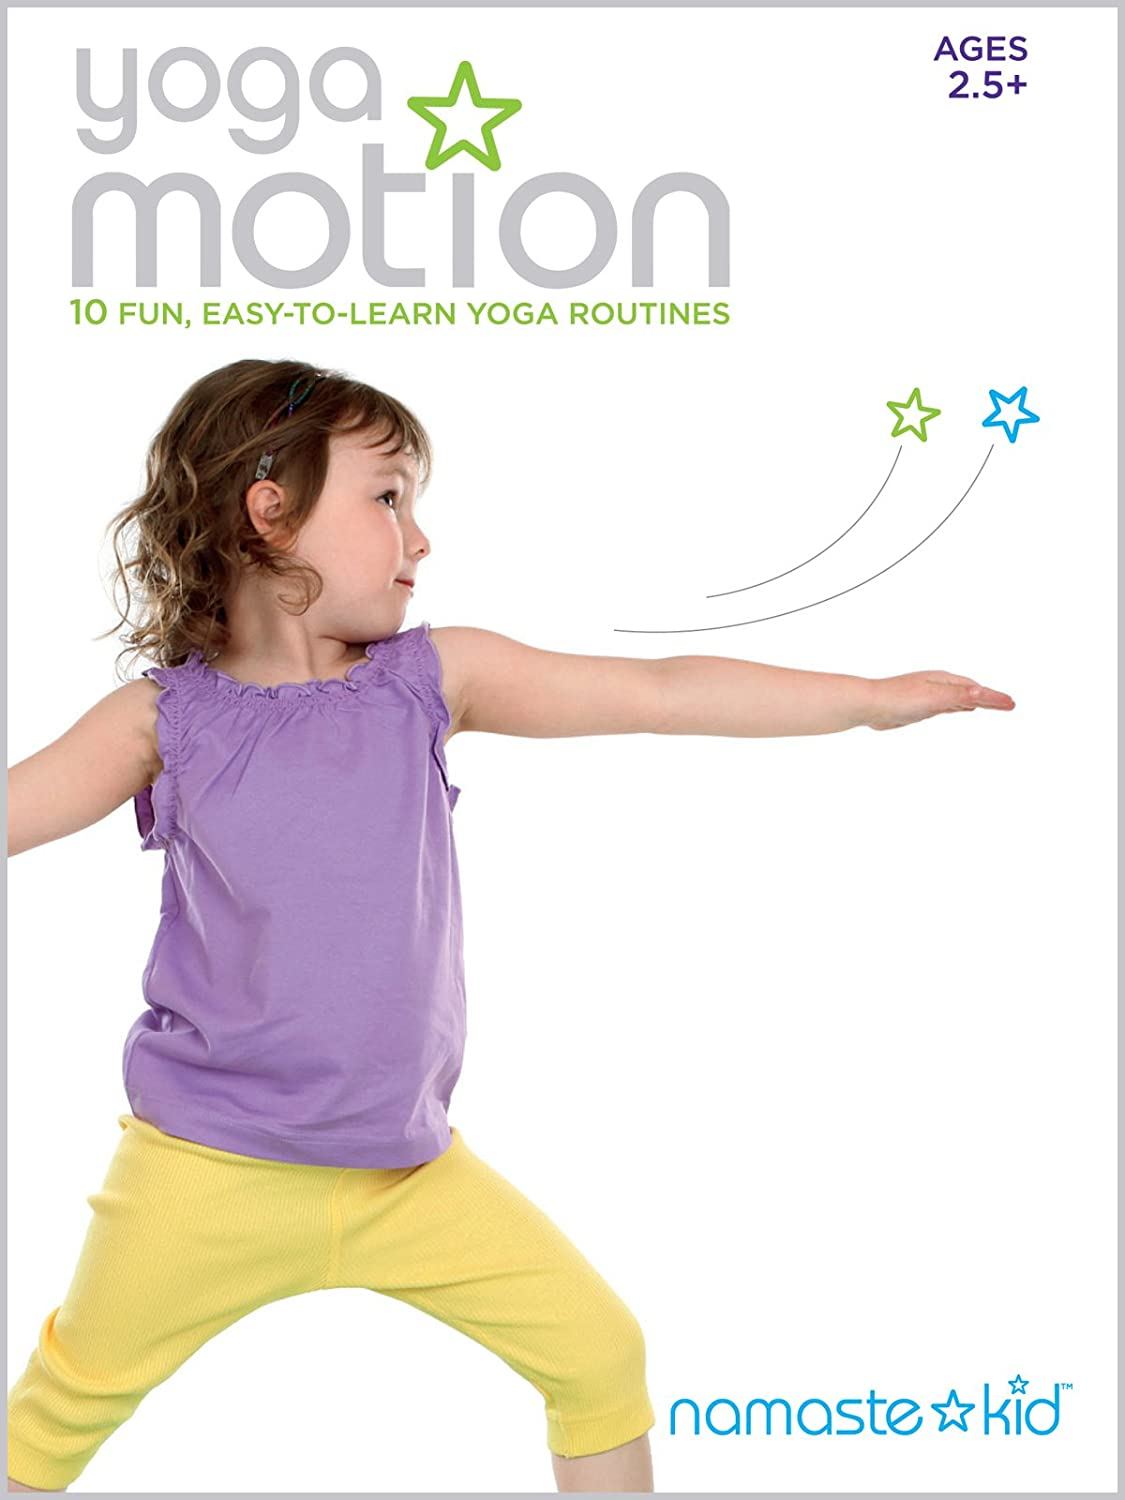 Amazon Com Yoga Motion Yoga Dvd For Kids Ages 2 5 Namaste Kid Lindsay Mccoy Movies Tv